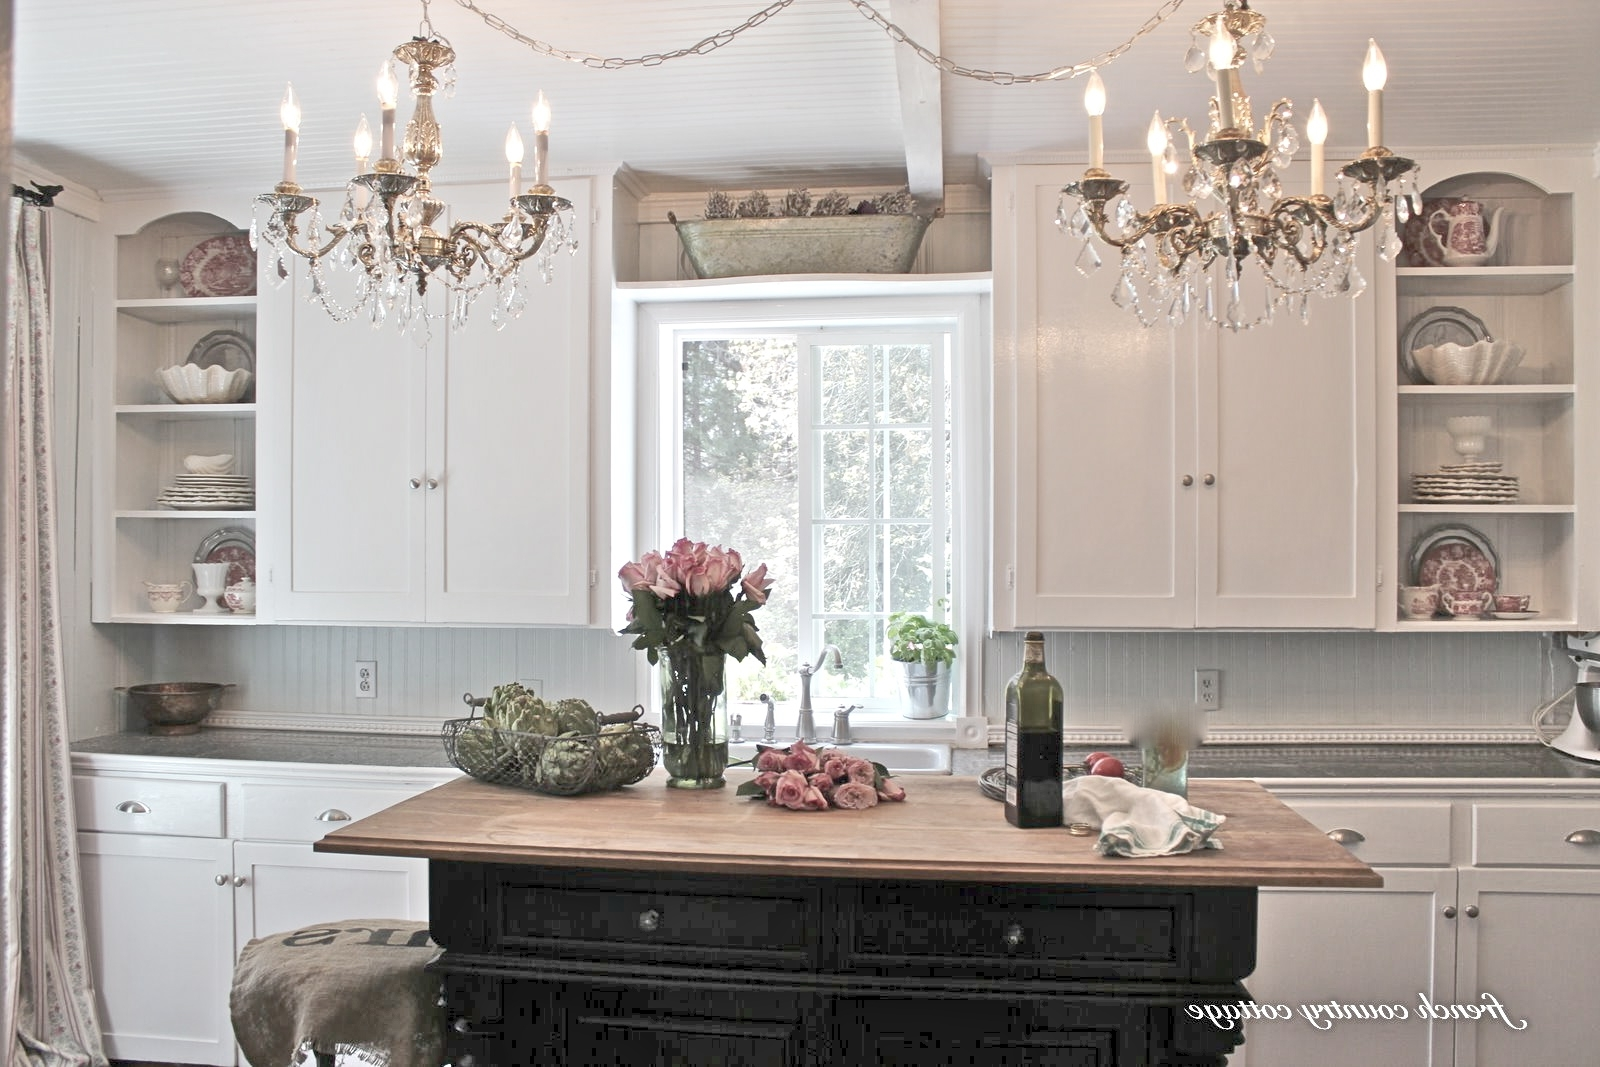 Creating Open Shelves In The Kitchen – French Country Cottage Within Current French Country Chandeliers For Kitchen (View 3 of 15)